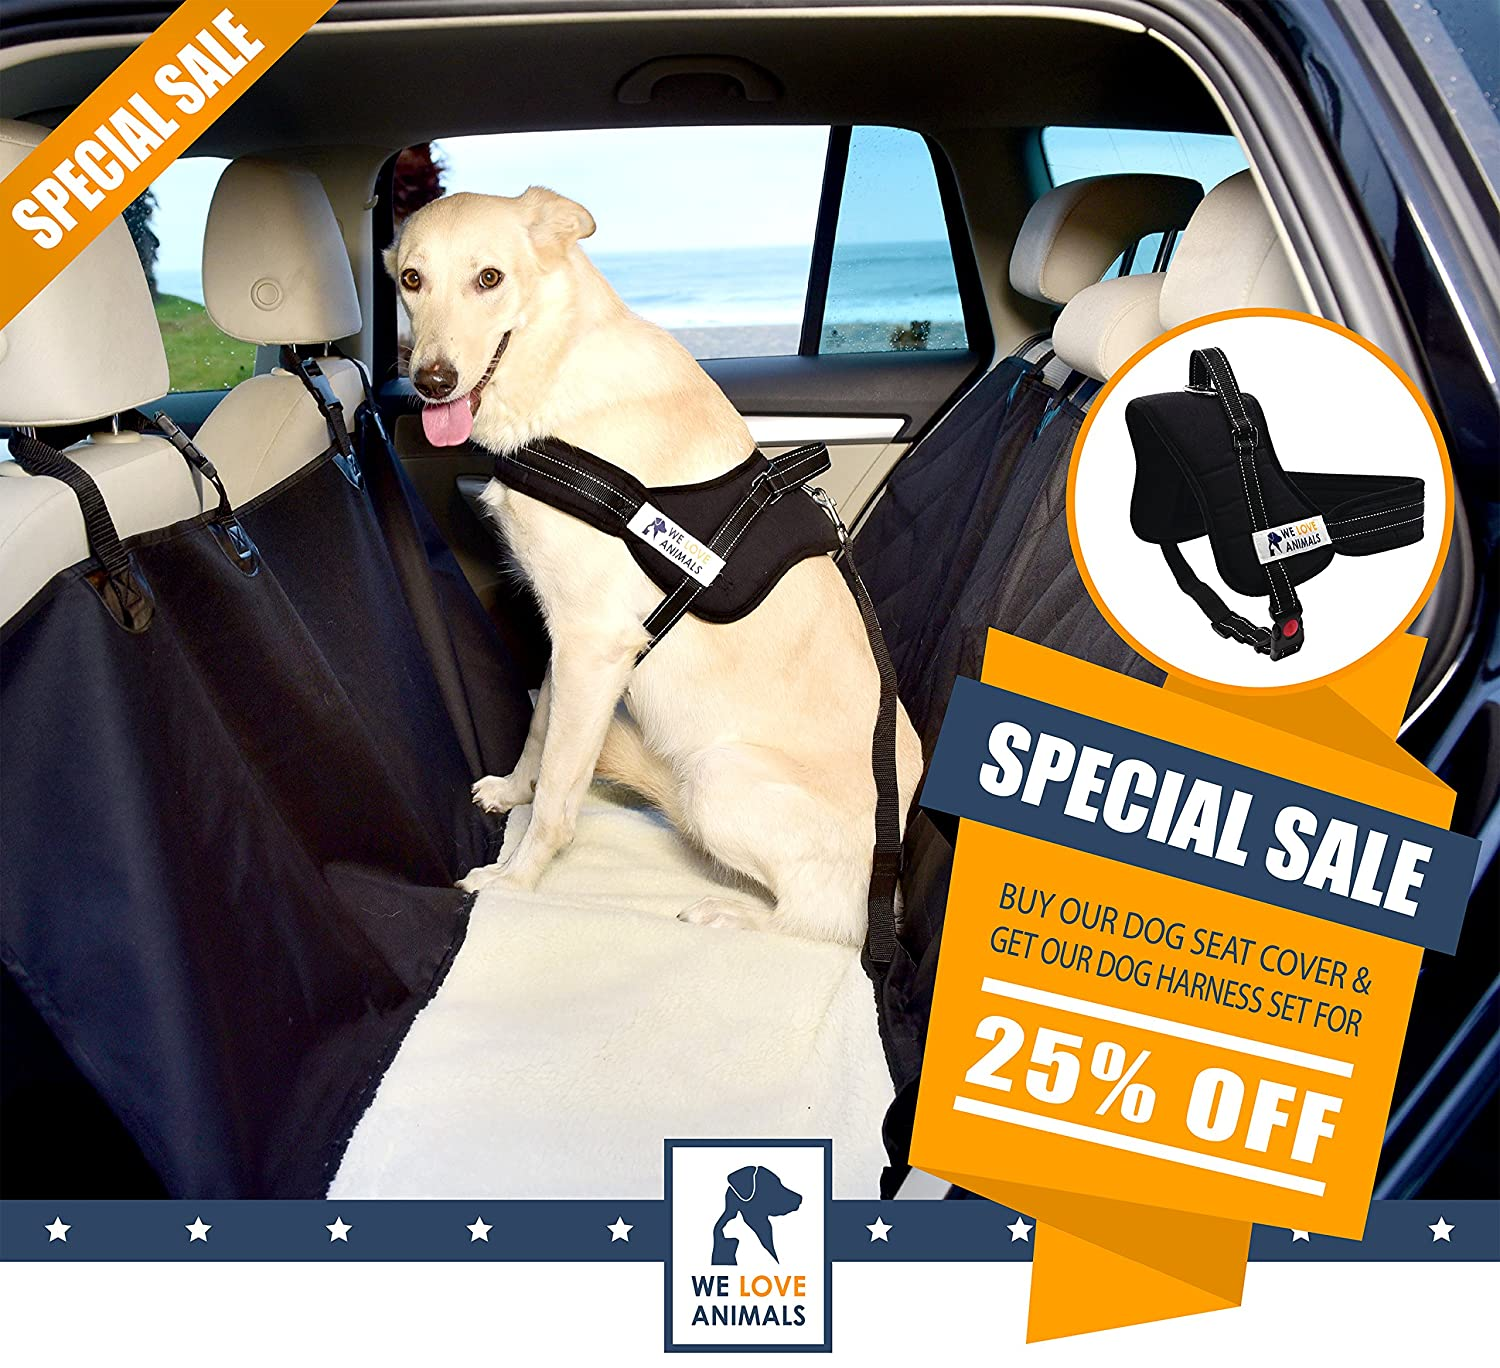 Dog Car Seat Cover - We Love Animals